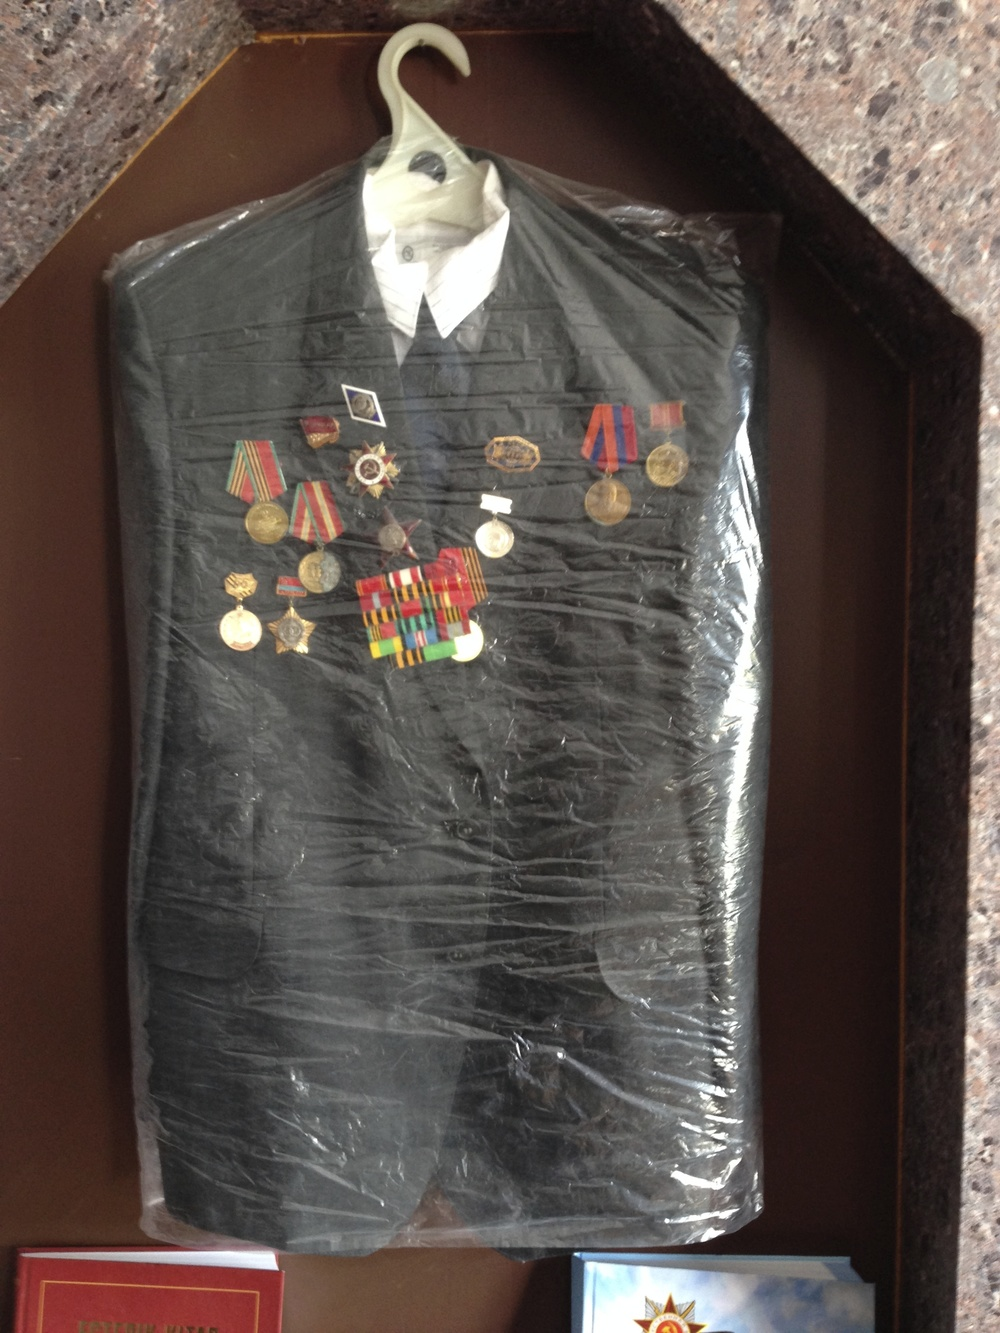 Suit jacket used as mounting for service medals.  Although the plastic covering may seem slightly obscuring for the viewer, its does mean it can be easily removed when staff want to show the medals up close.